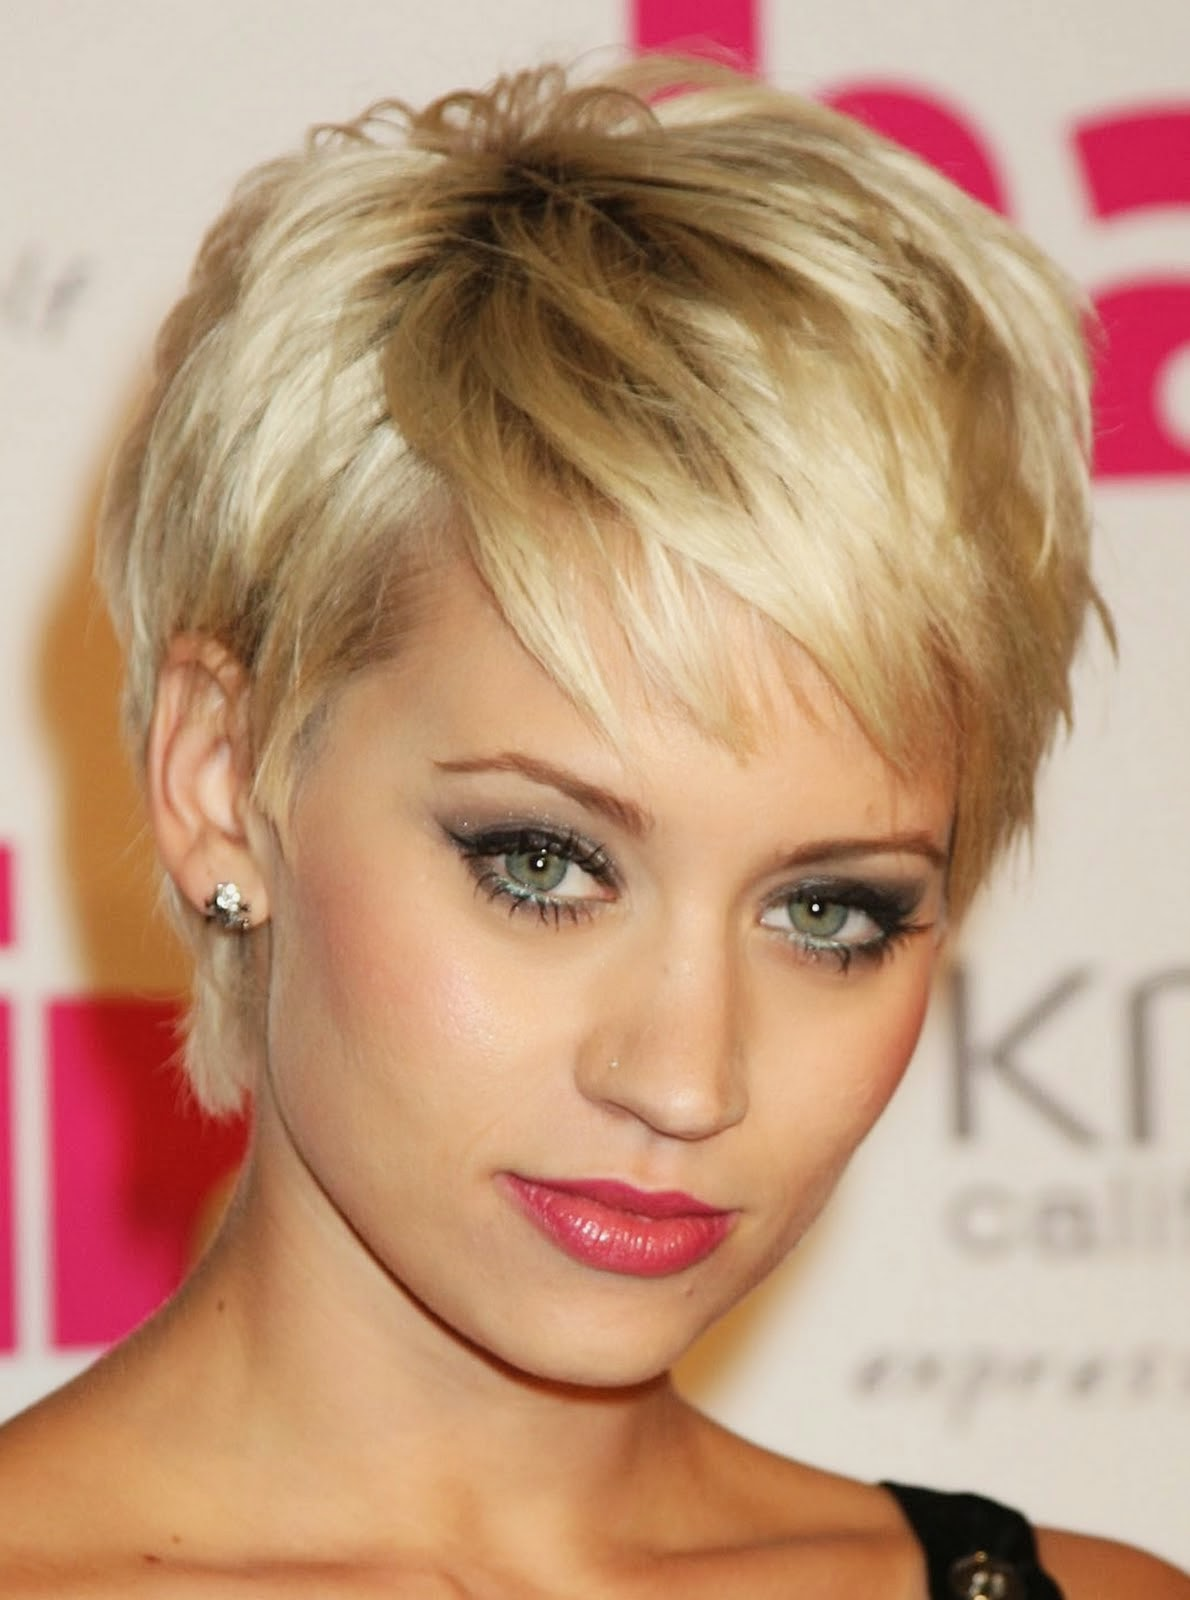 Todays Hair Styles : ... Fine Hair And Oval Face Latesthairstyless.us- Hairstyle Ideas Today